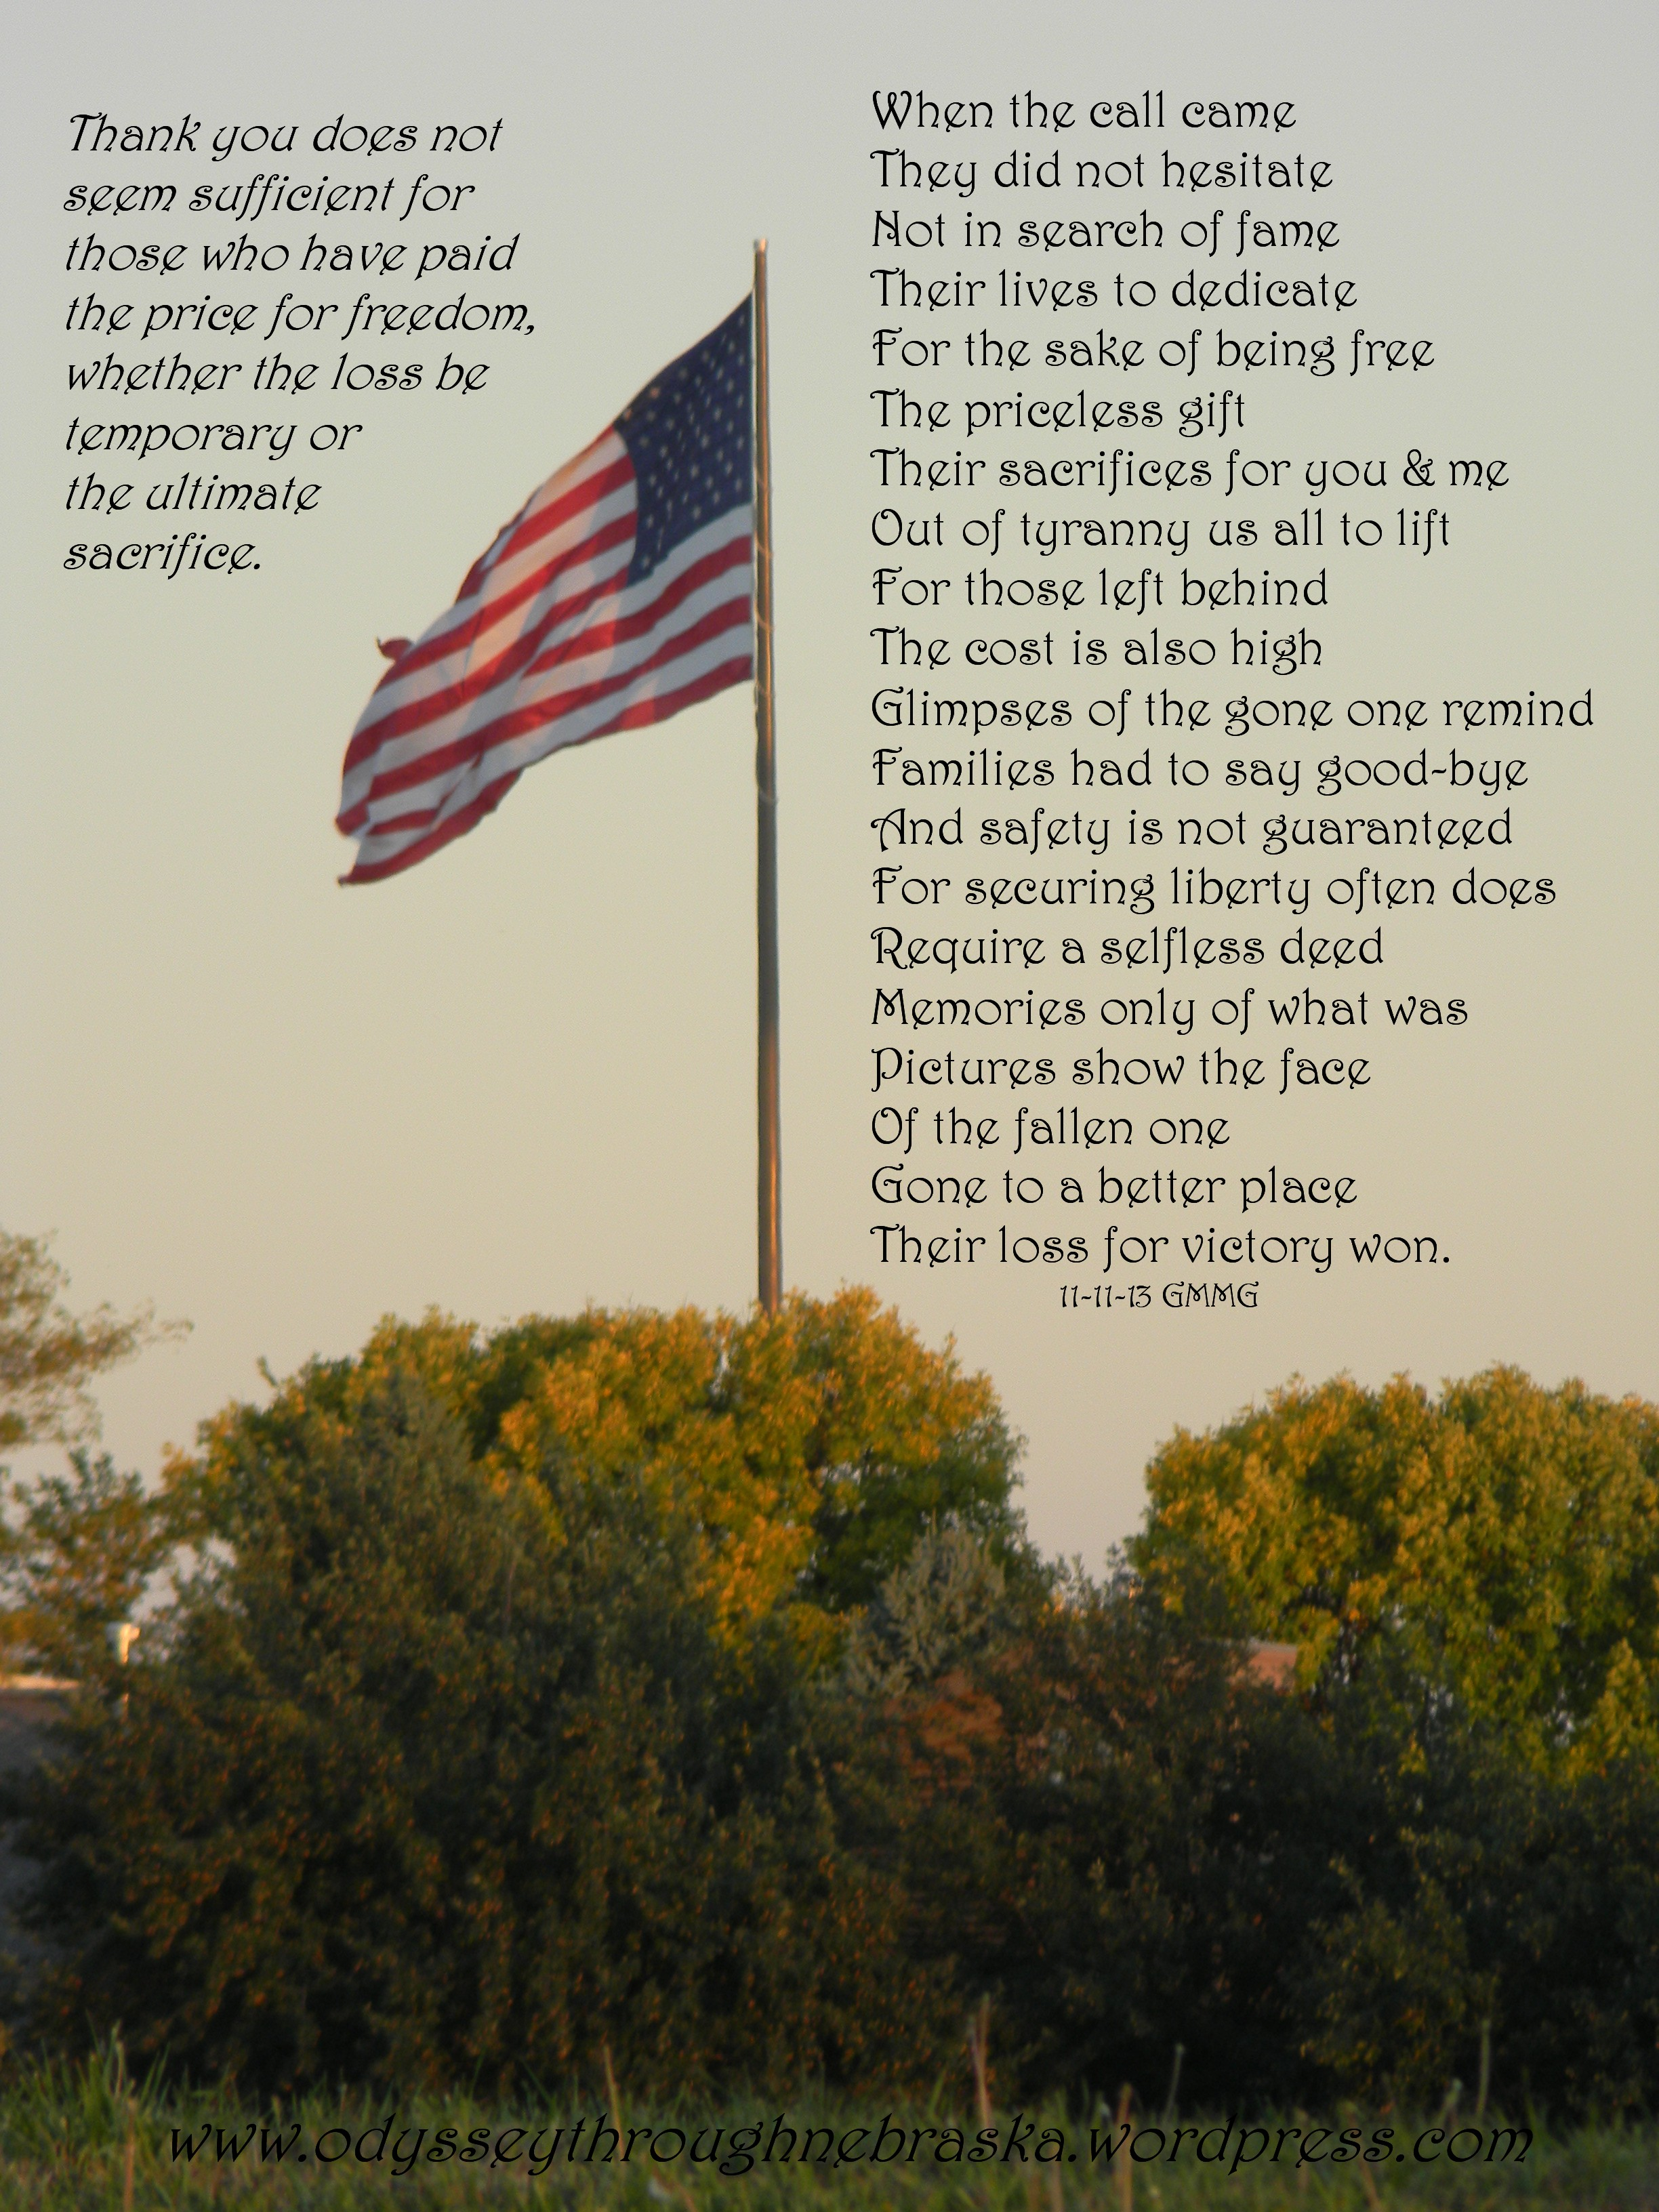 11-11 Veteran's Day Poem